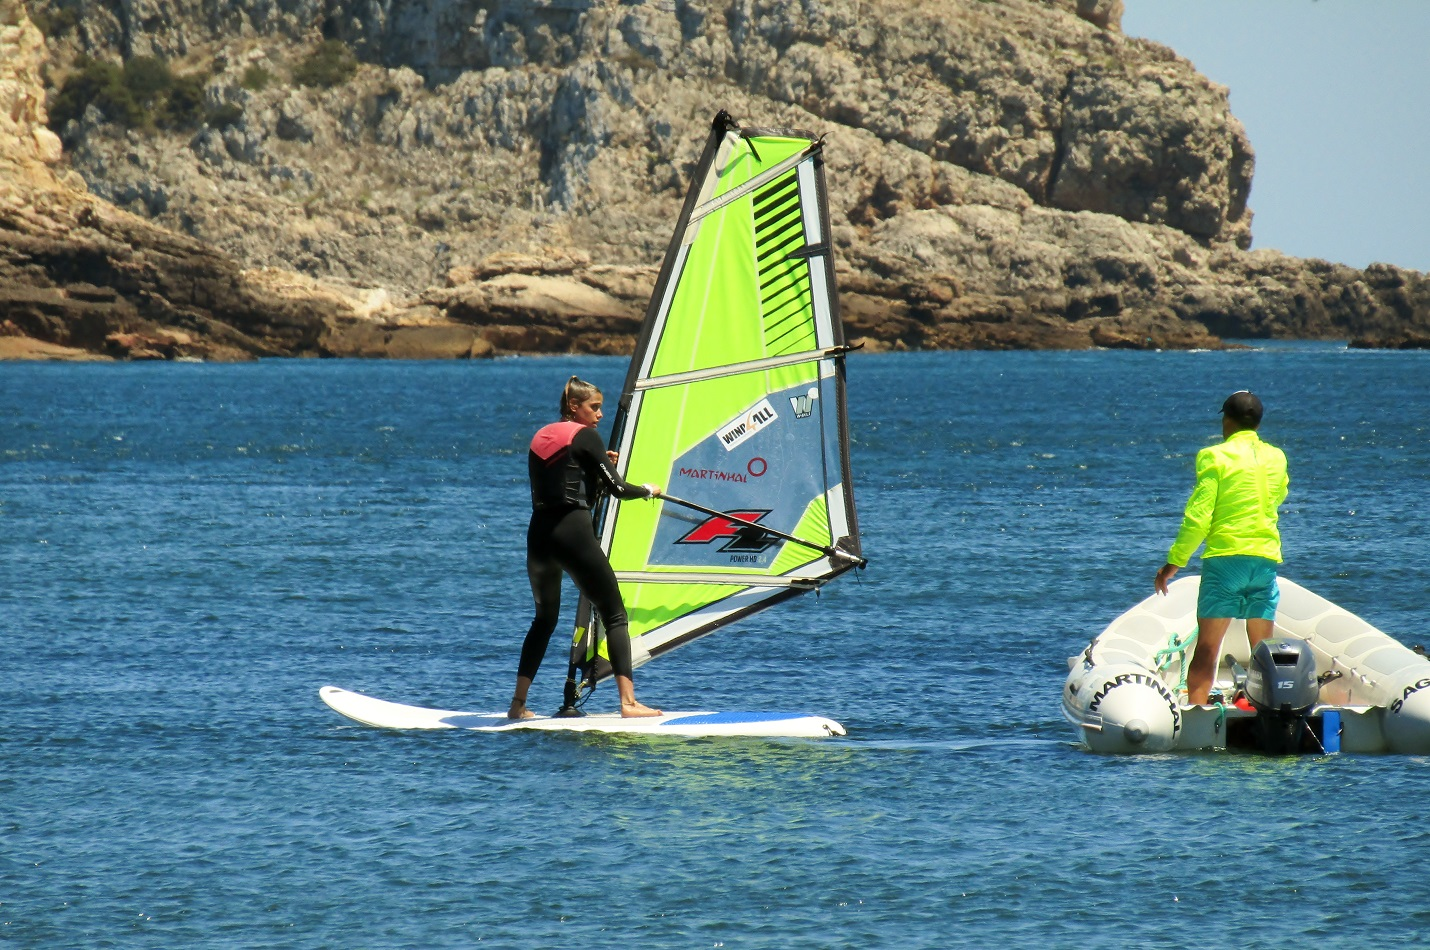 Girl holding her windsurf aside her instructor giving her tips from its boat